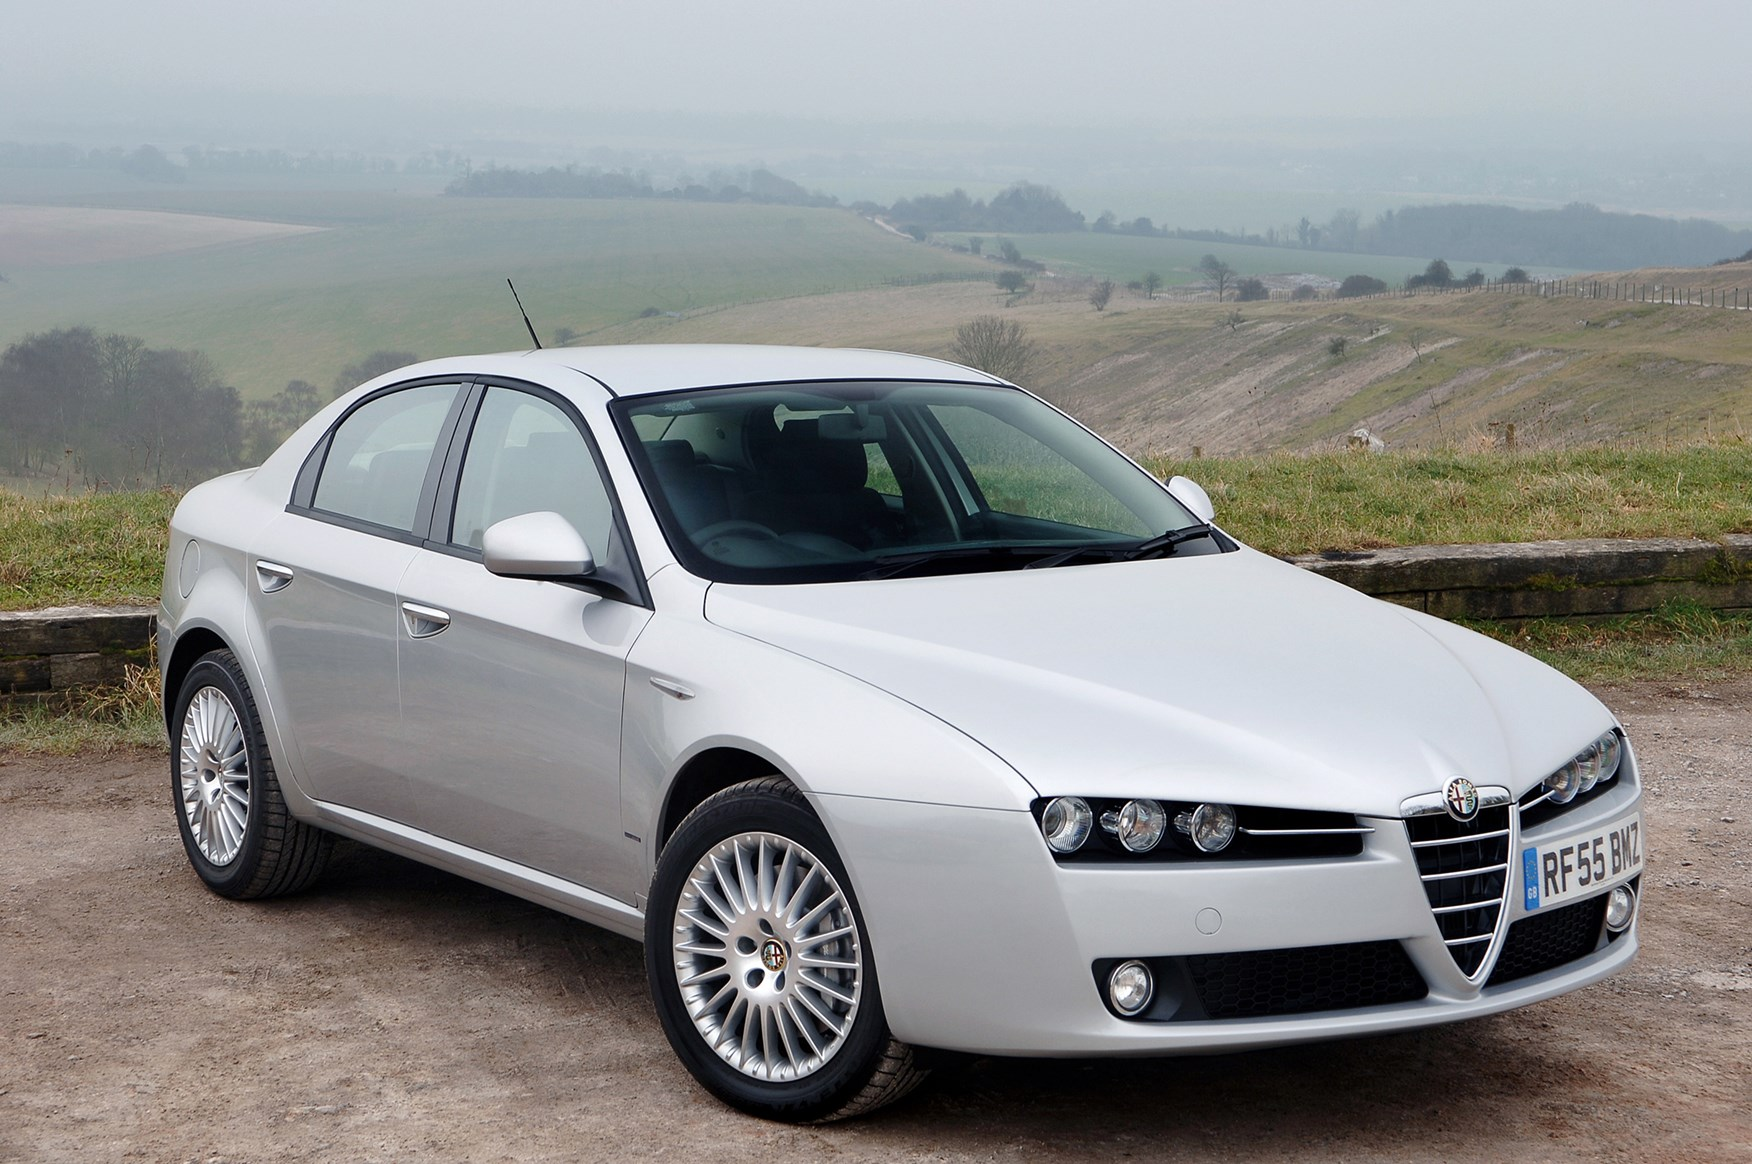 alfa romeo 159 saloon review 2006 2011 parkers. Black Bedroom Furniture Sets. Home Design Ideas